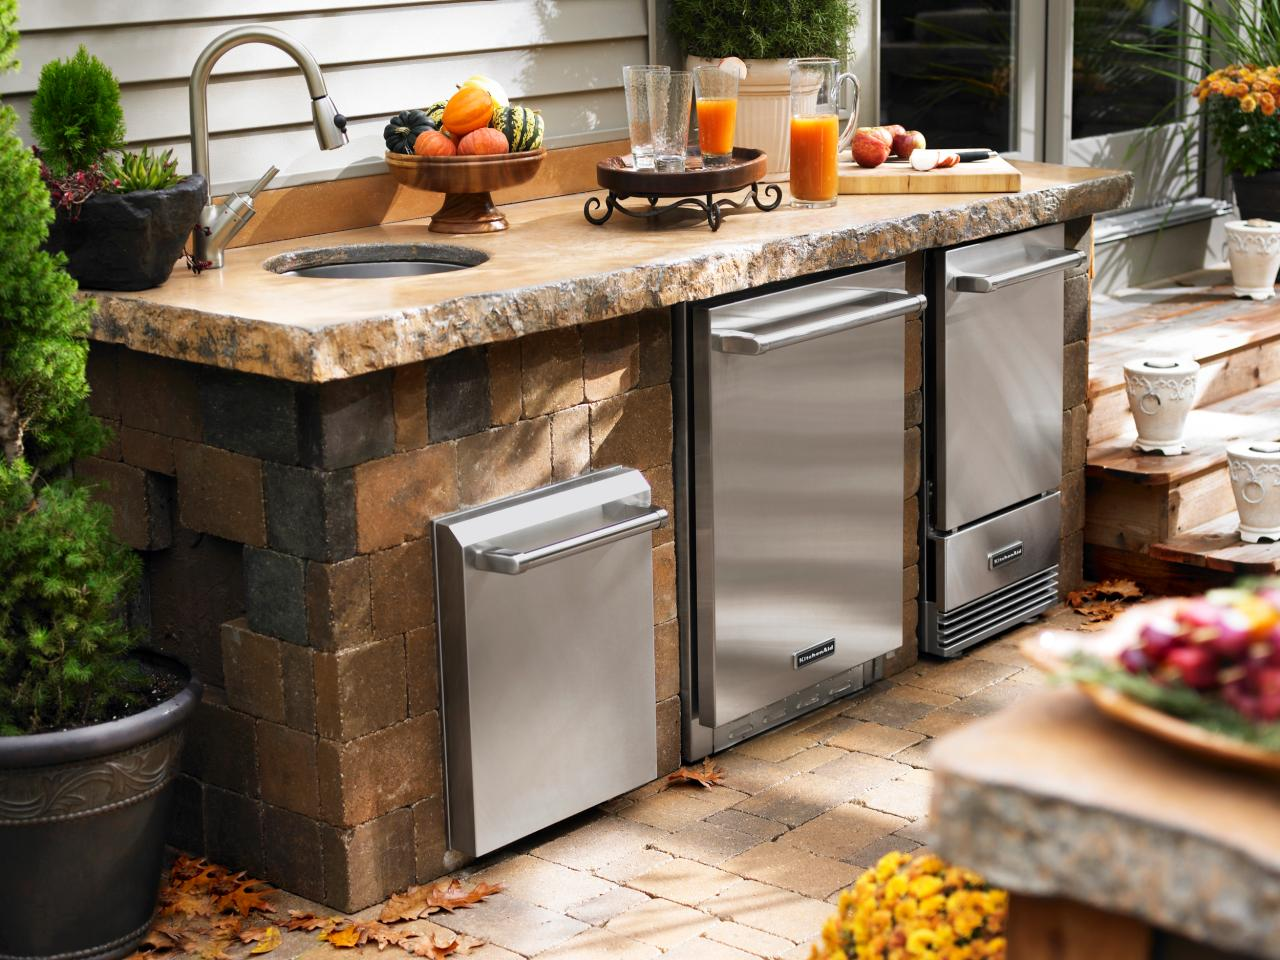 Why should you make use of outdoor kitchen kits?